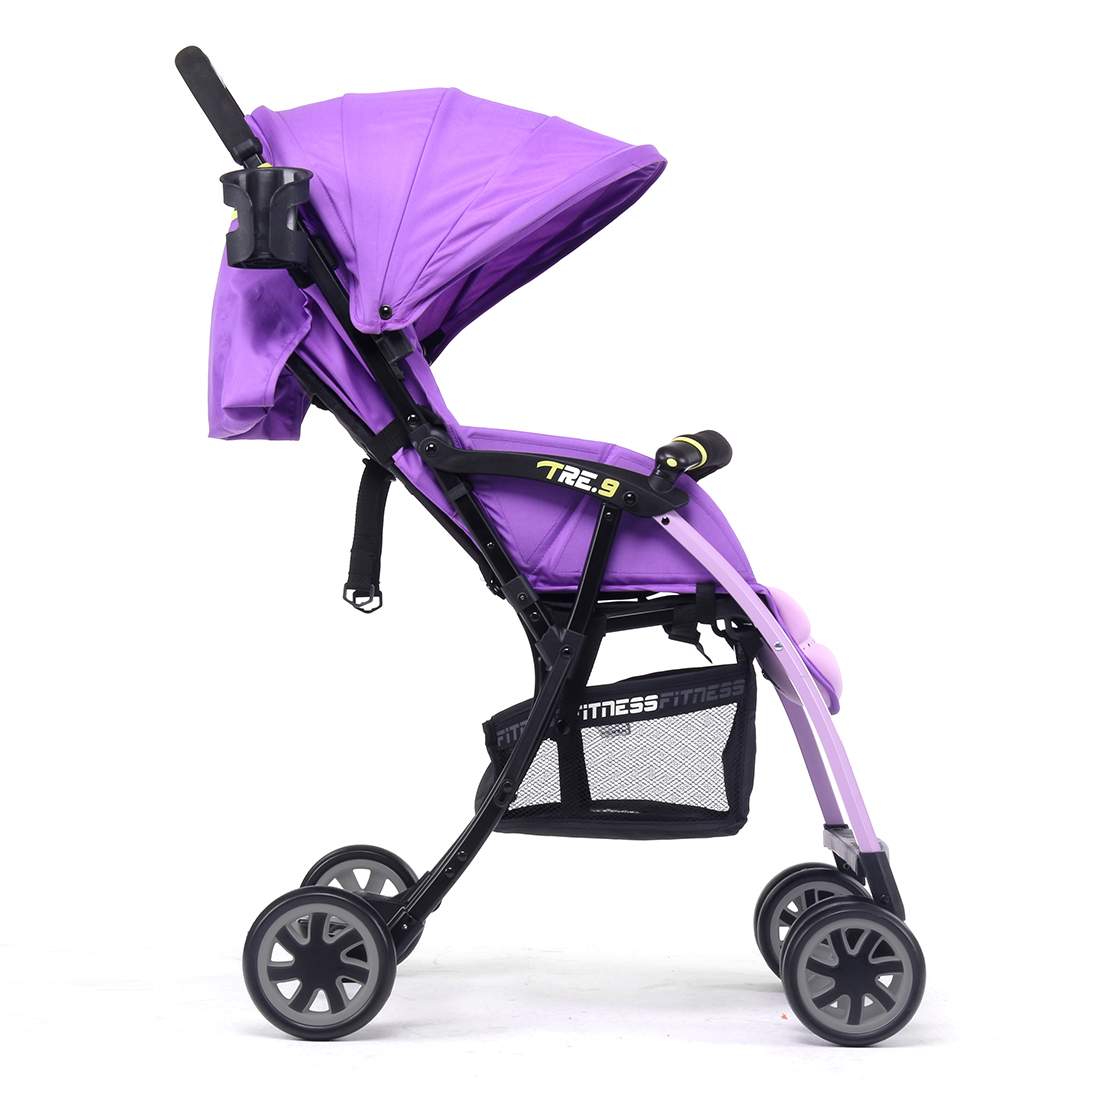 Pali Ultra Lightweight Tre.9 Stroller Fitness Fashion in Rio Purple - Only 11 lbs.